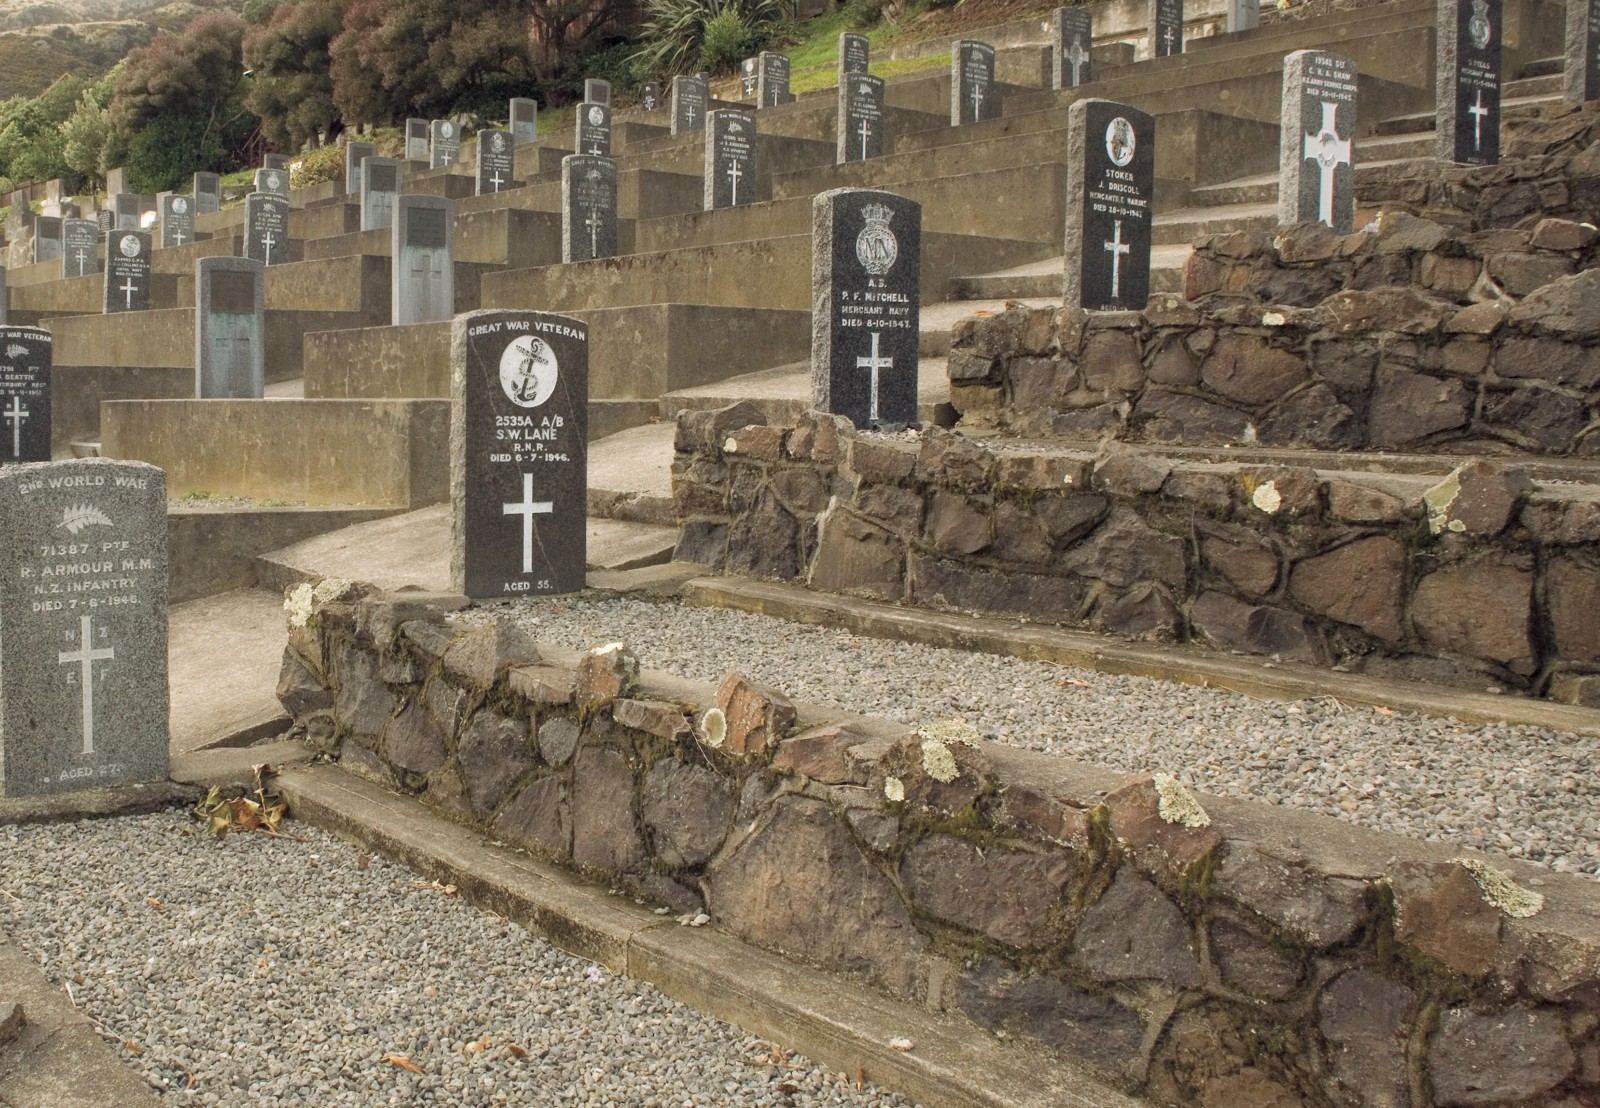 Lyttelton cemetery is the last resting place for many navy personnel. Close as it is to a former prison, it is also the unmarked home to Fredrick William Eggers, sentenced to the gallows in 1918. A further 21 men were hanged in New Zealand prior to abolition of the death penalty in 1961. The last, Walter James Bolton, died in 1957.